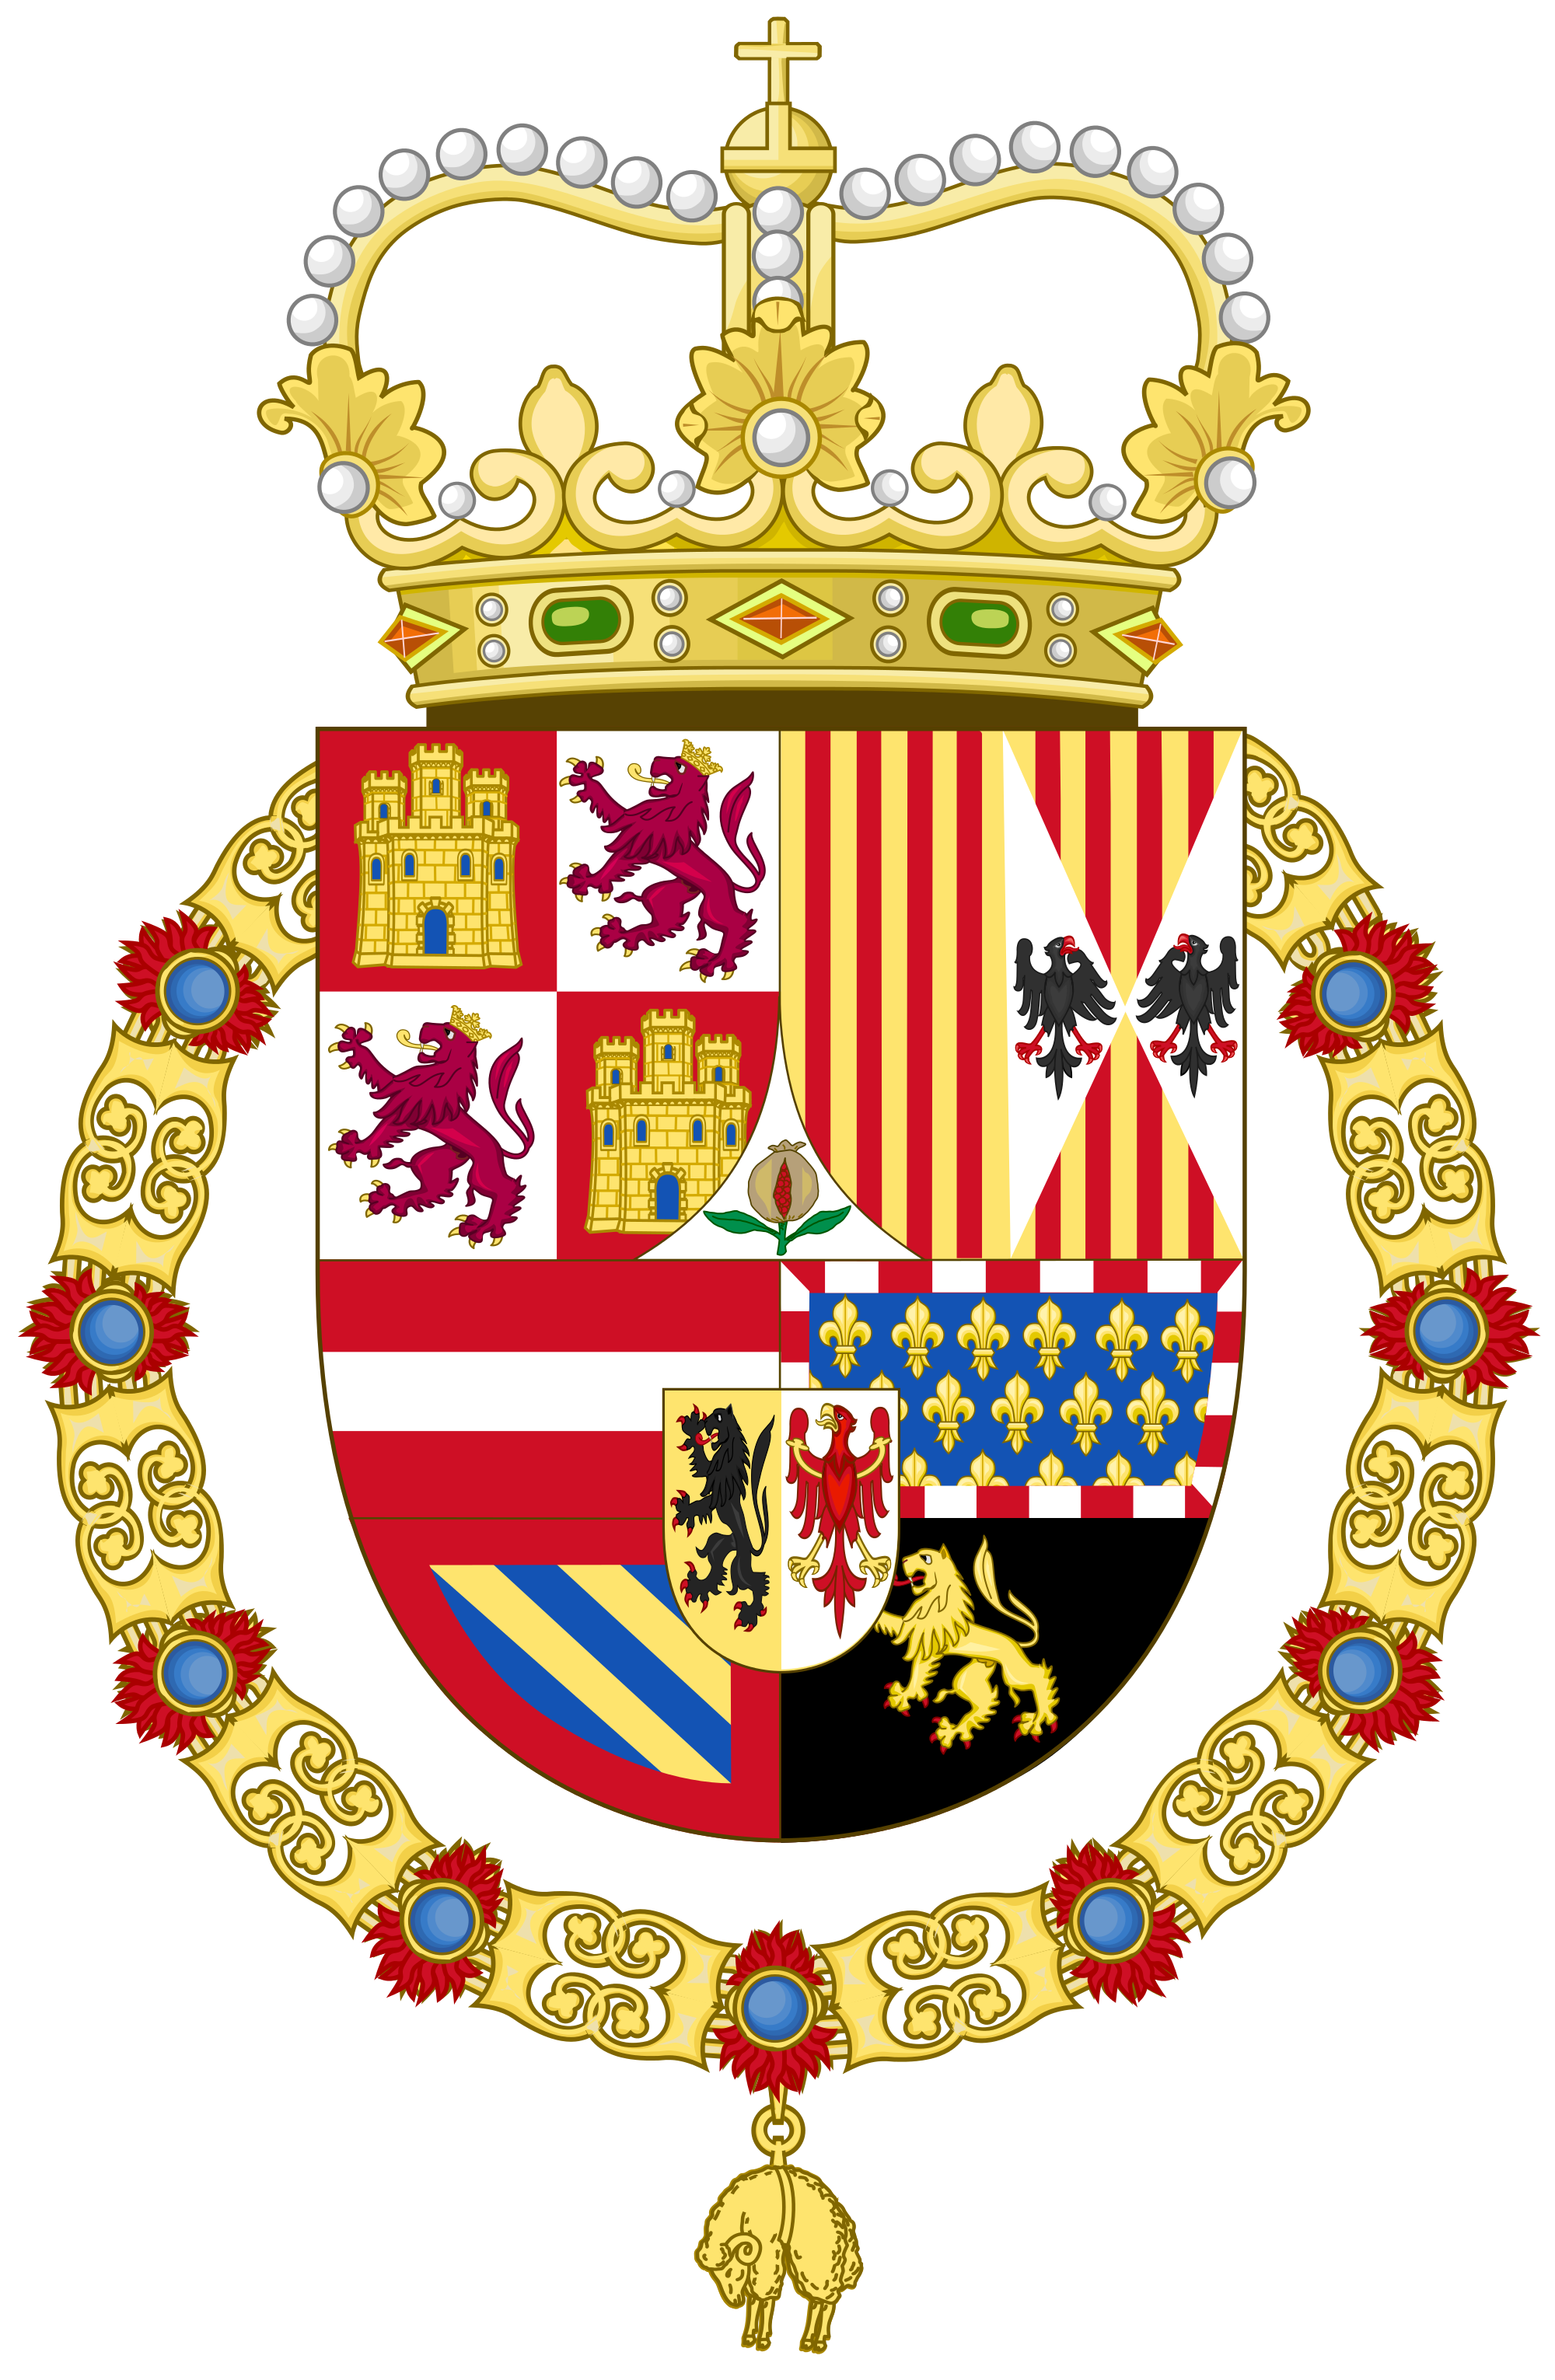 Coat of arms of spain clipart svg library library Coat of arms of Spain - Wikipedia svg library library